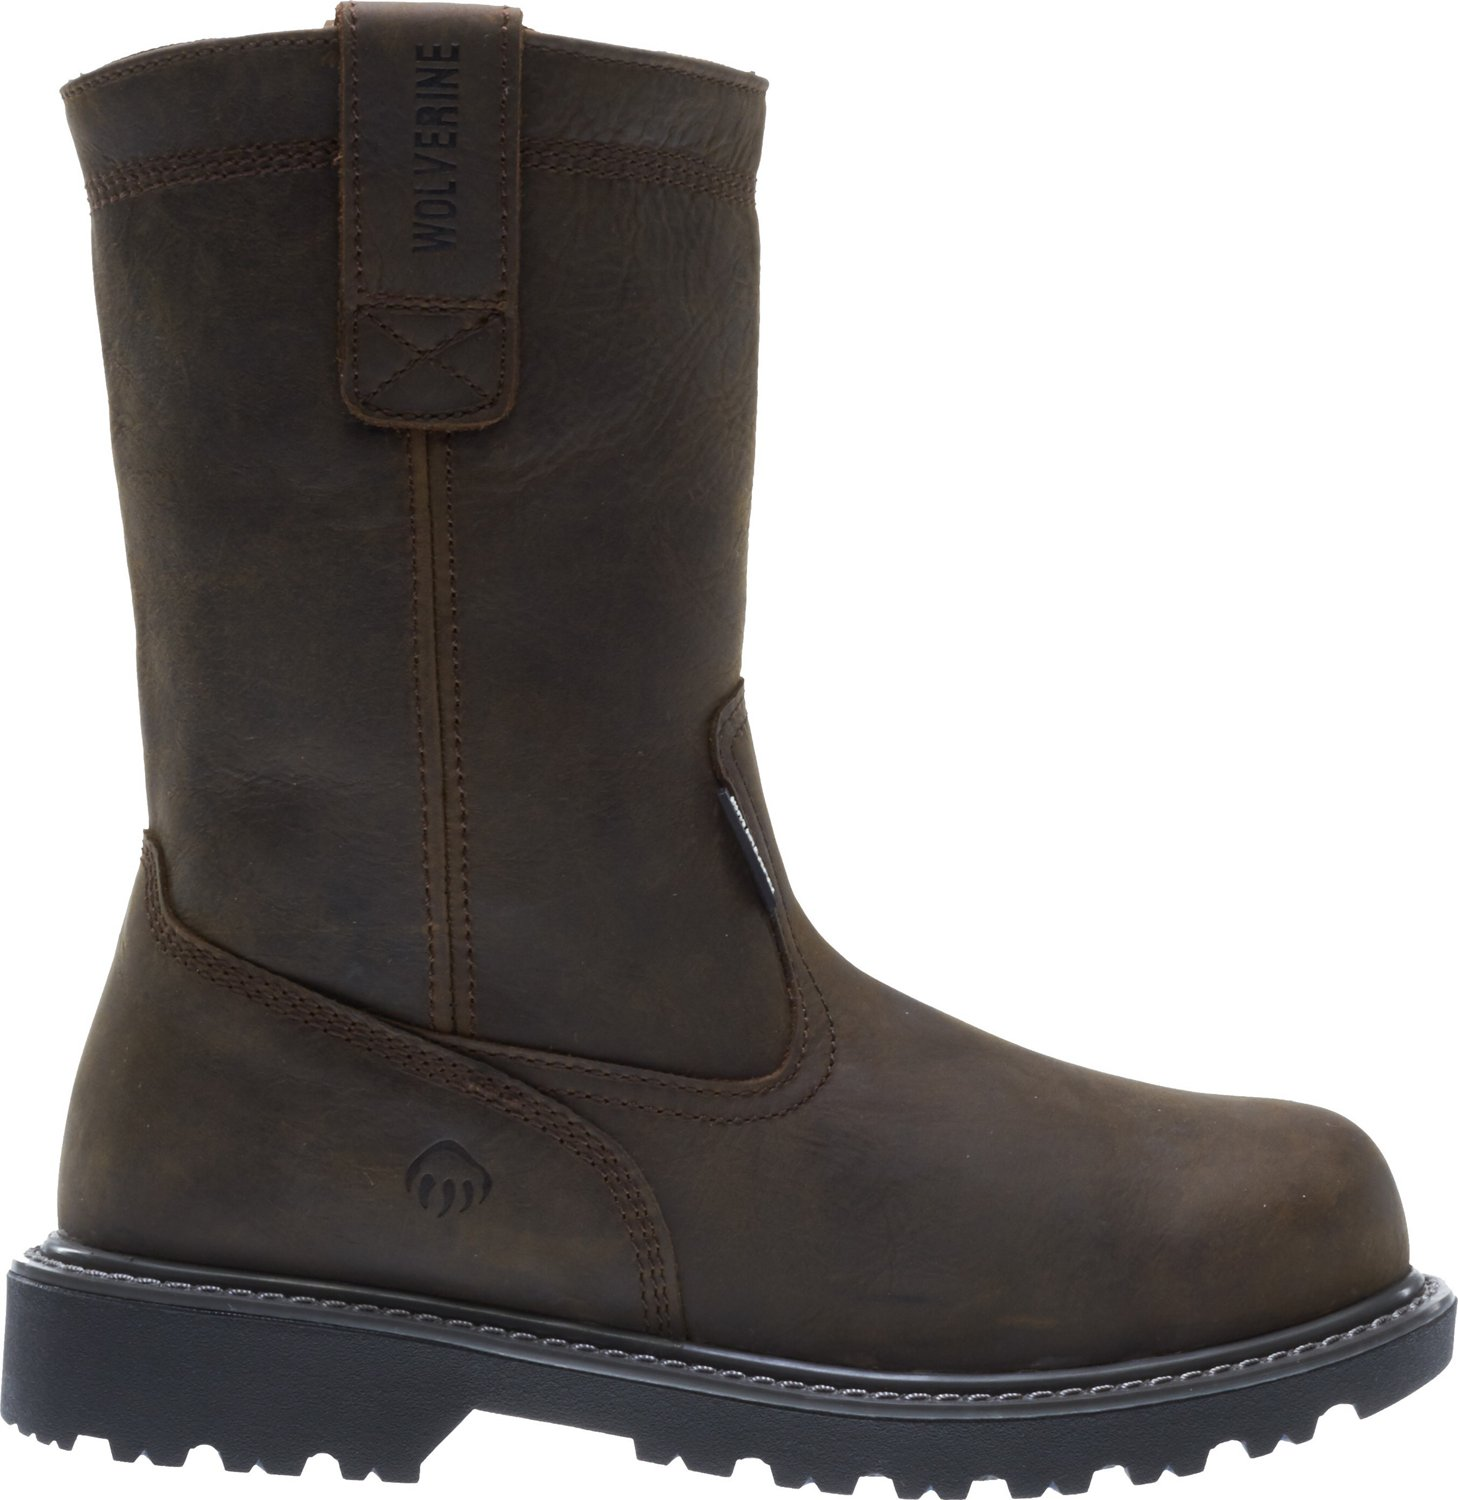 6ad59f821d52 Display product reviews for Wolverine Men s Floorhand 10 in Wellington Work  Boots